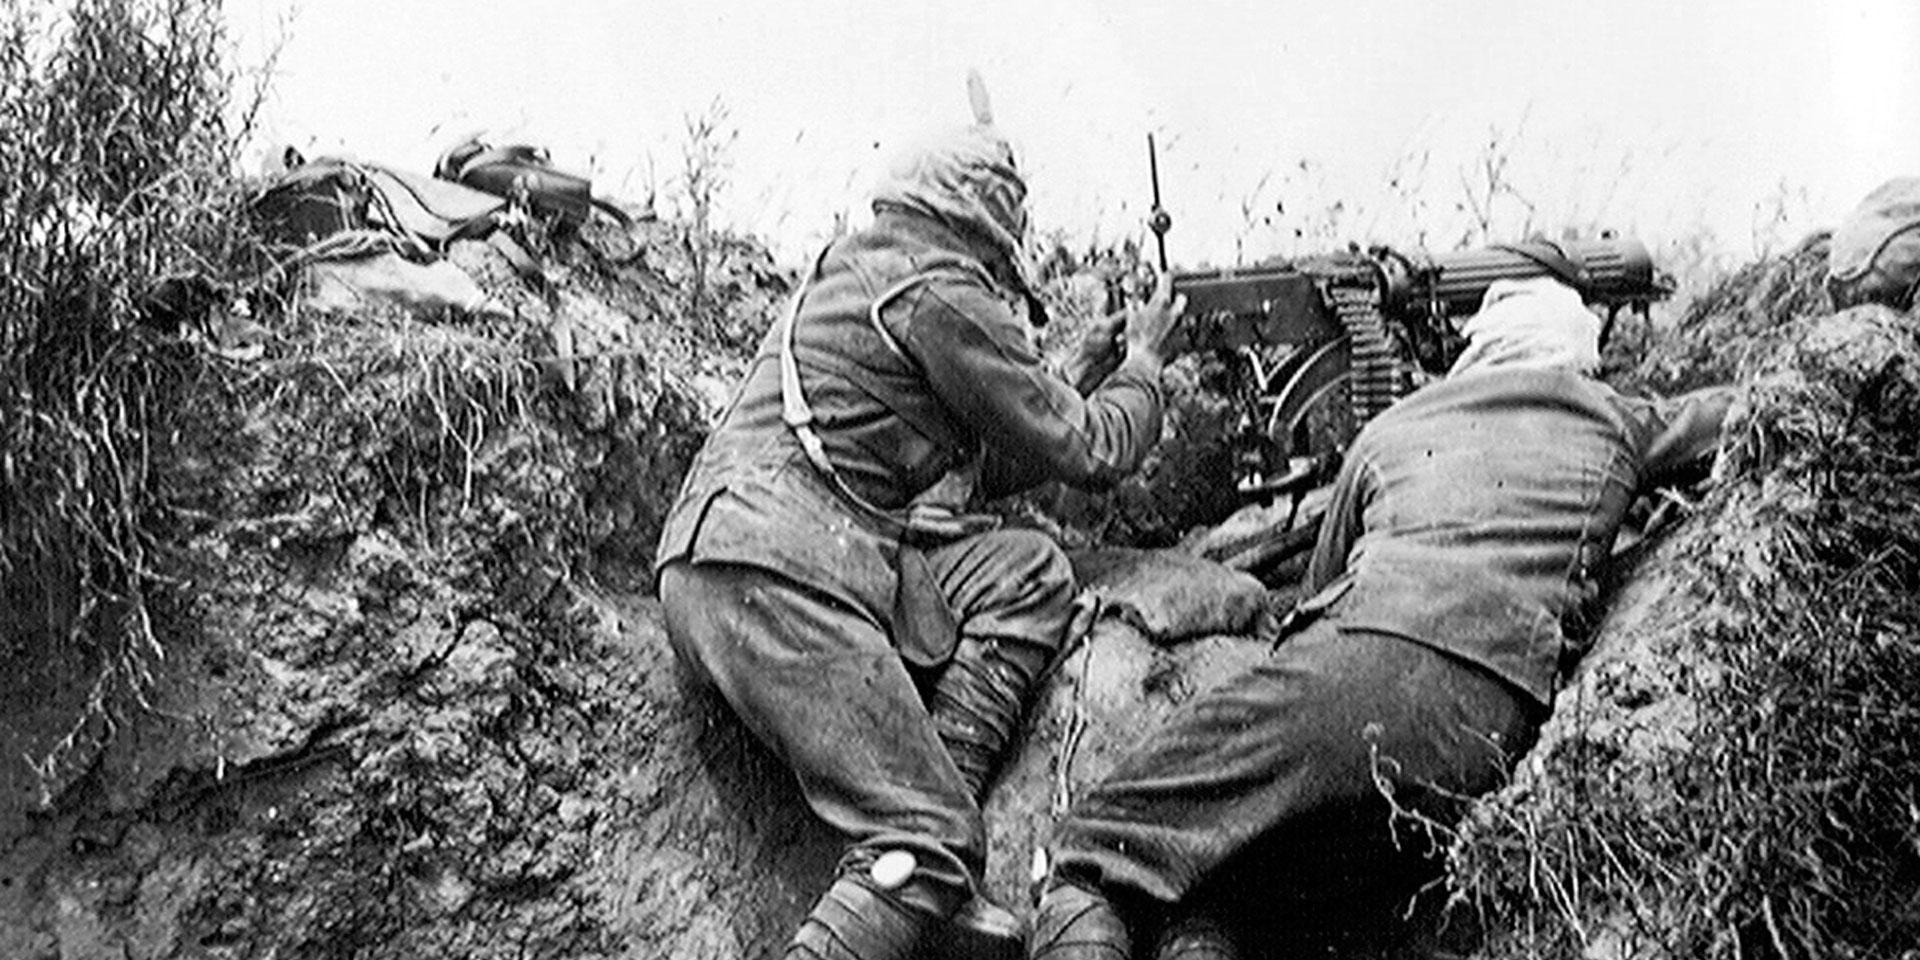 A Vickers machine gun team near Ovilliers on the Somme, July 1916